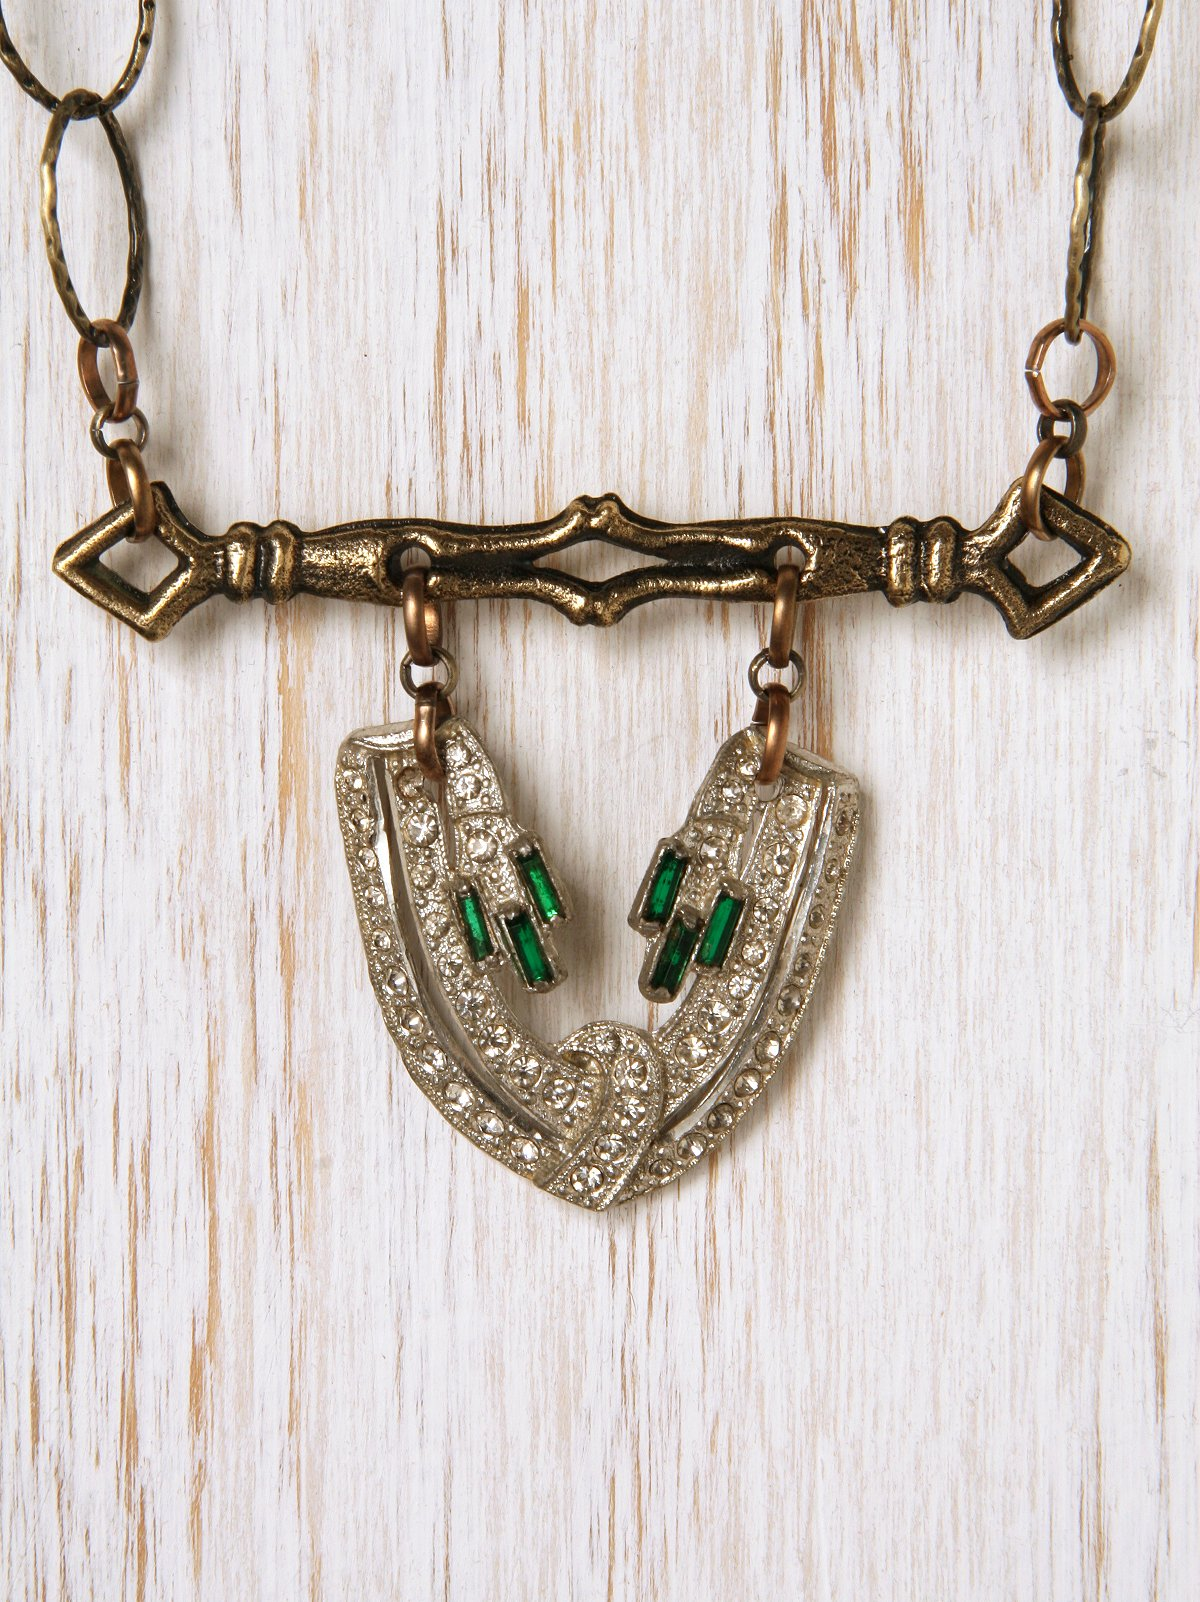 Vintage Rhinestone One Of A Kind Necklace